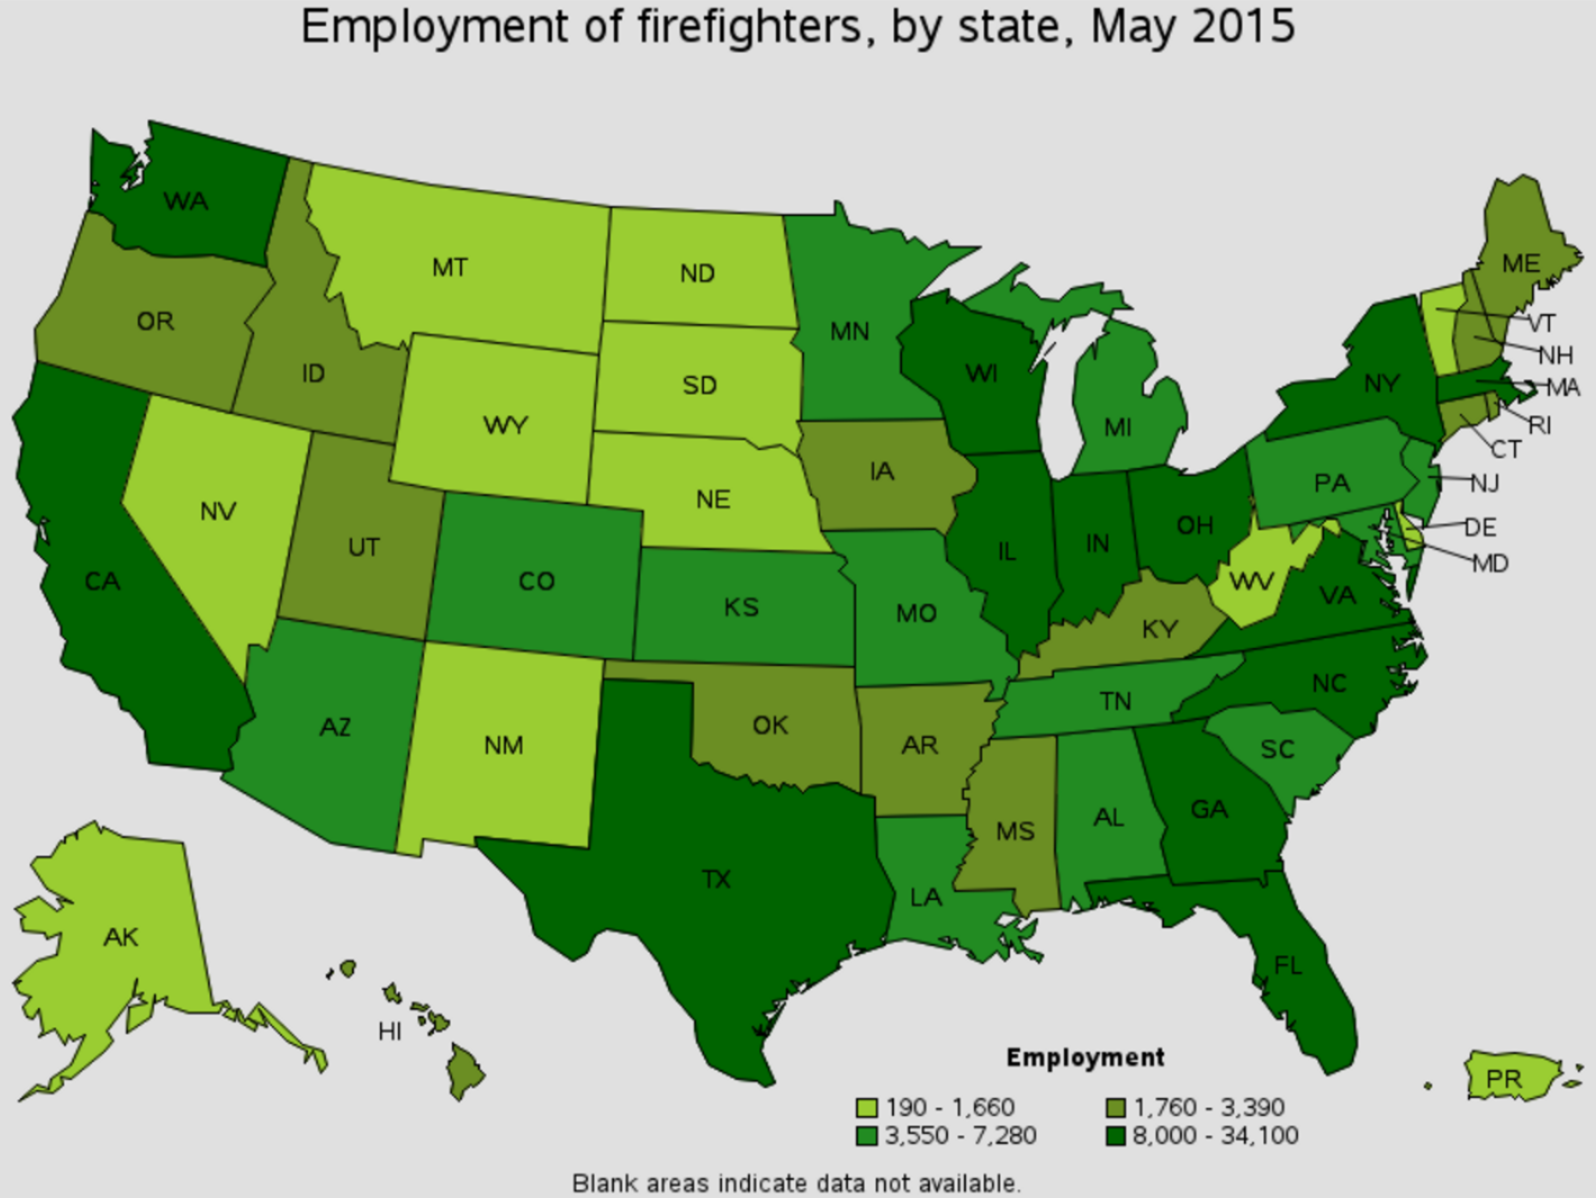 firefighter job outlook by state Camillus New York